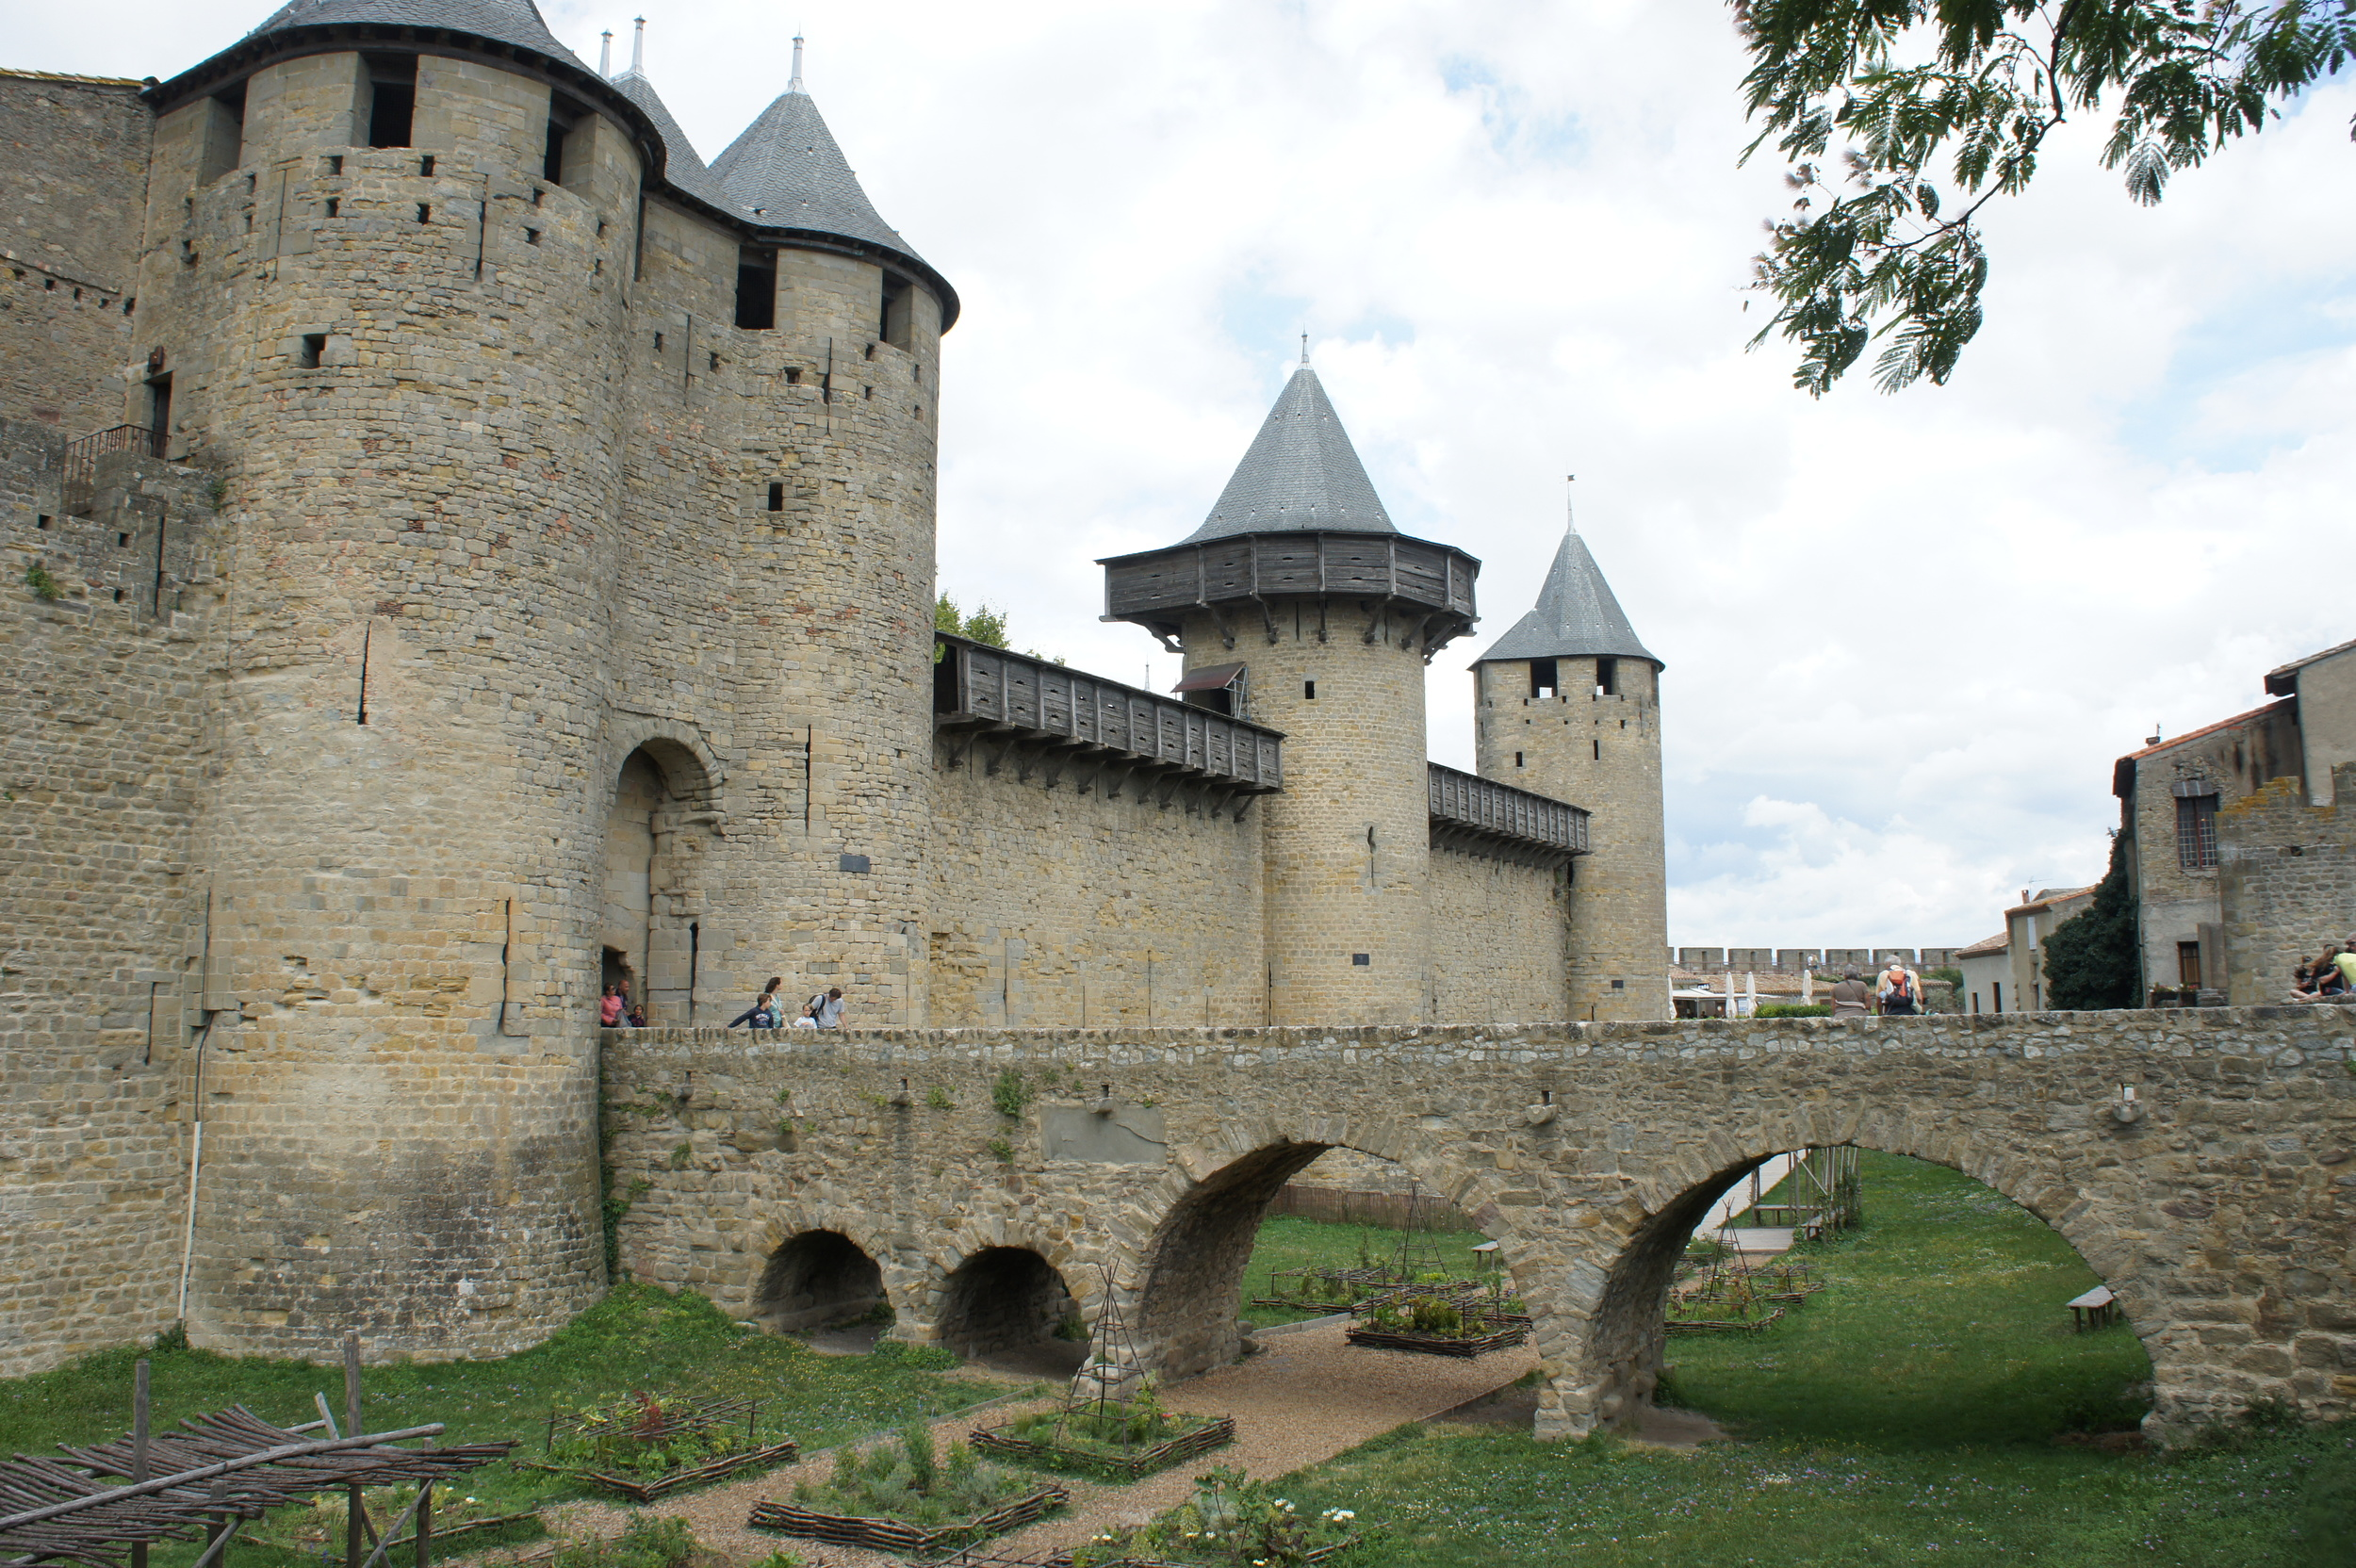 The Inner Fortress of Le Cite Carcassonne